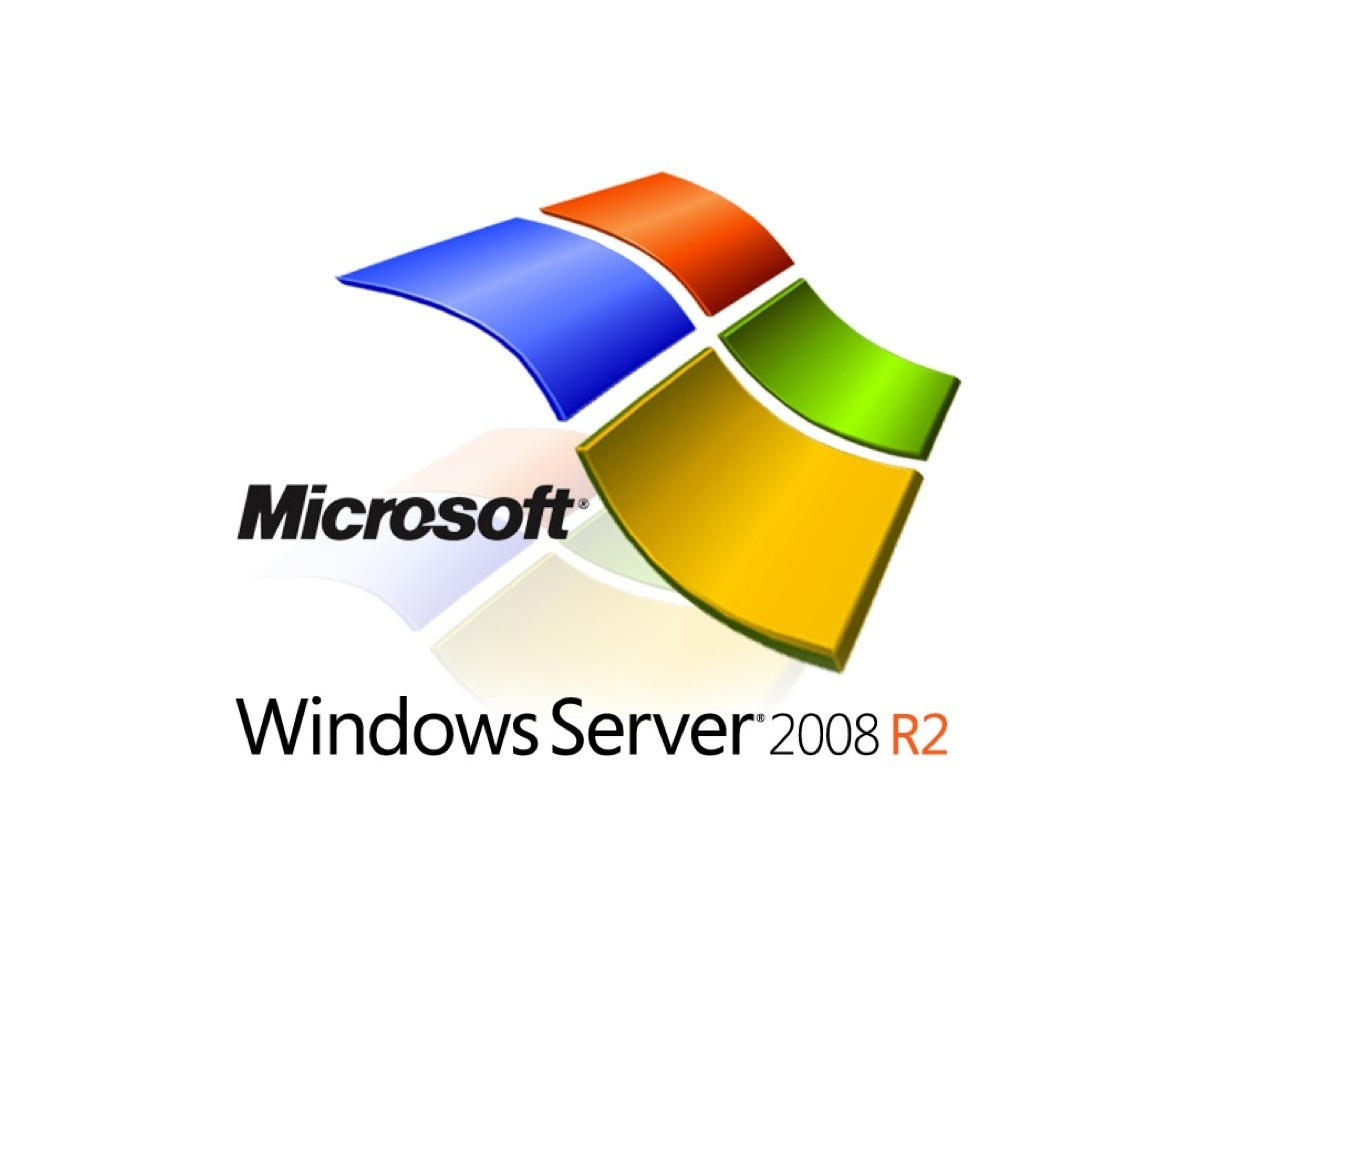 Migrate Server Roles to Windows Server 2008 R2